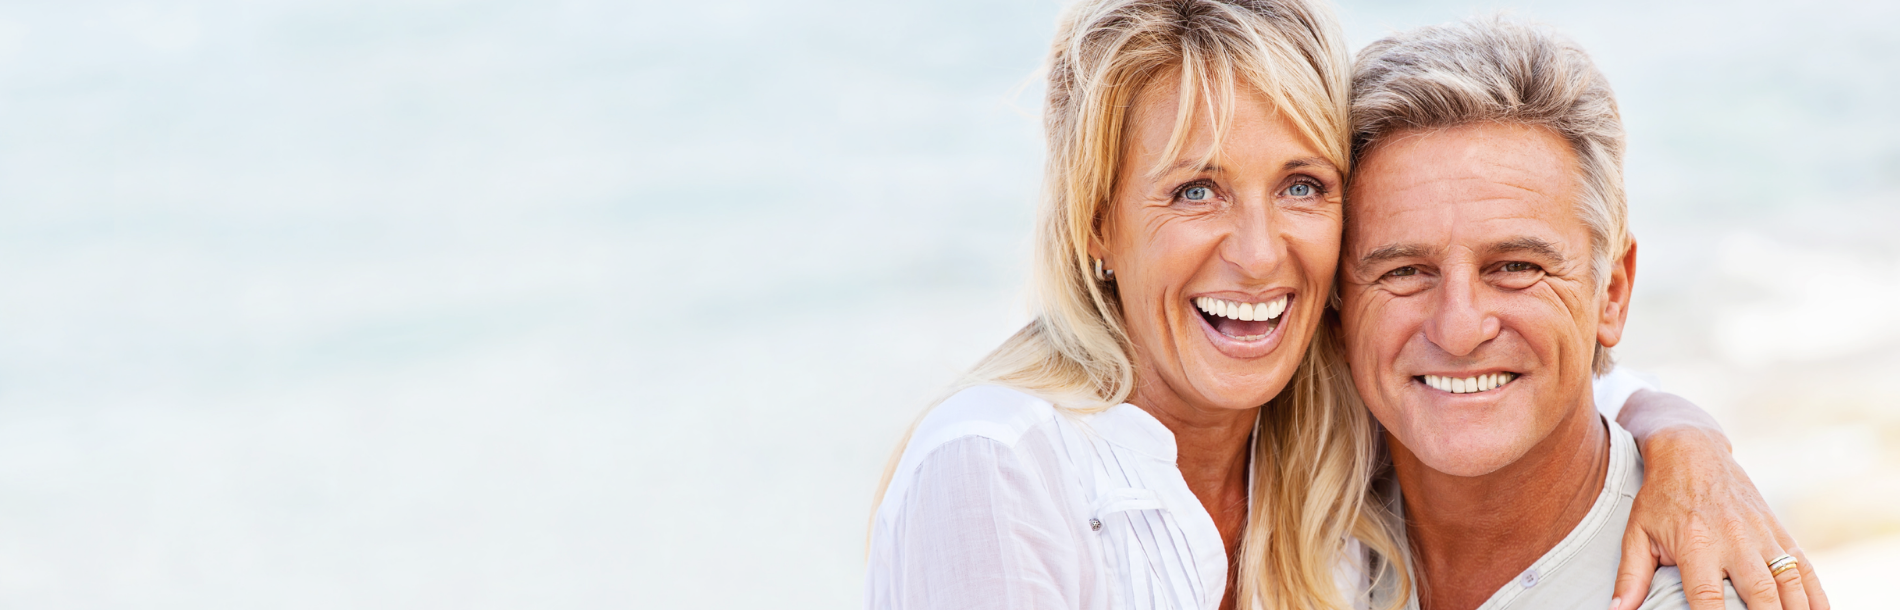 Missing teeth? Use your Superannuation for Dental Implants!